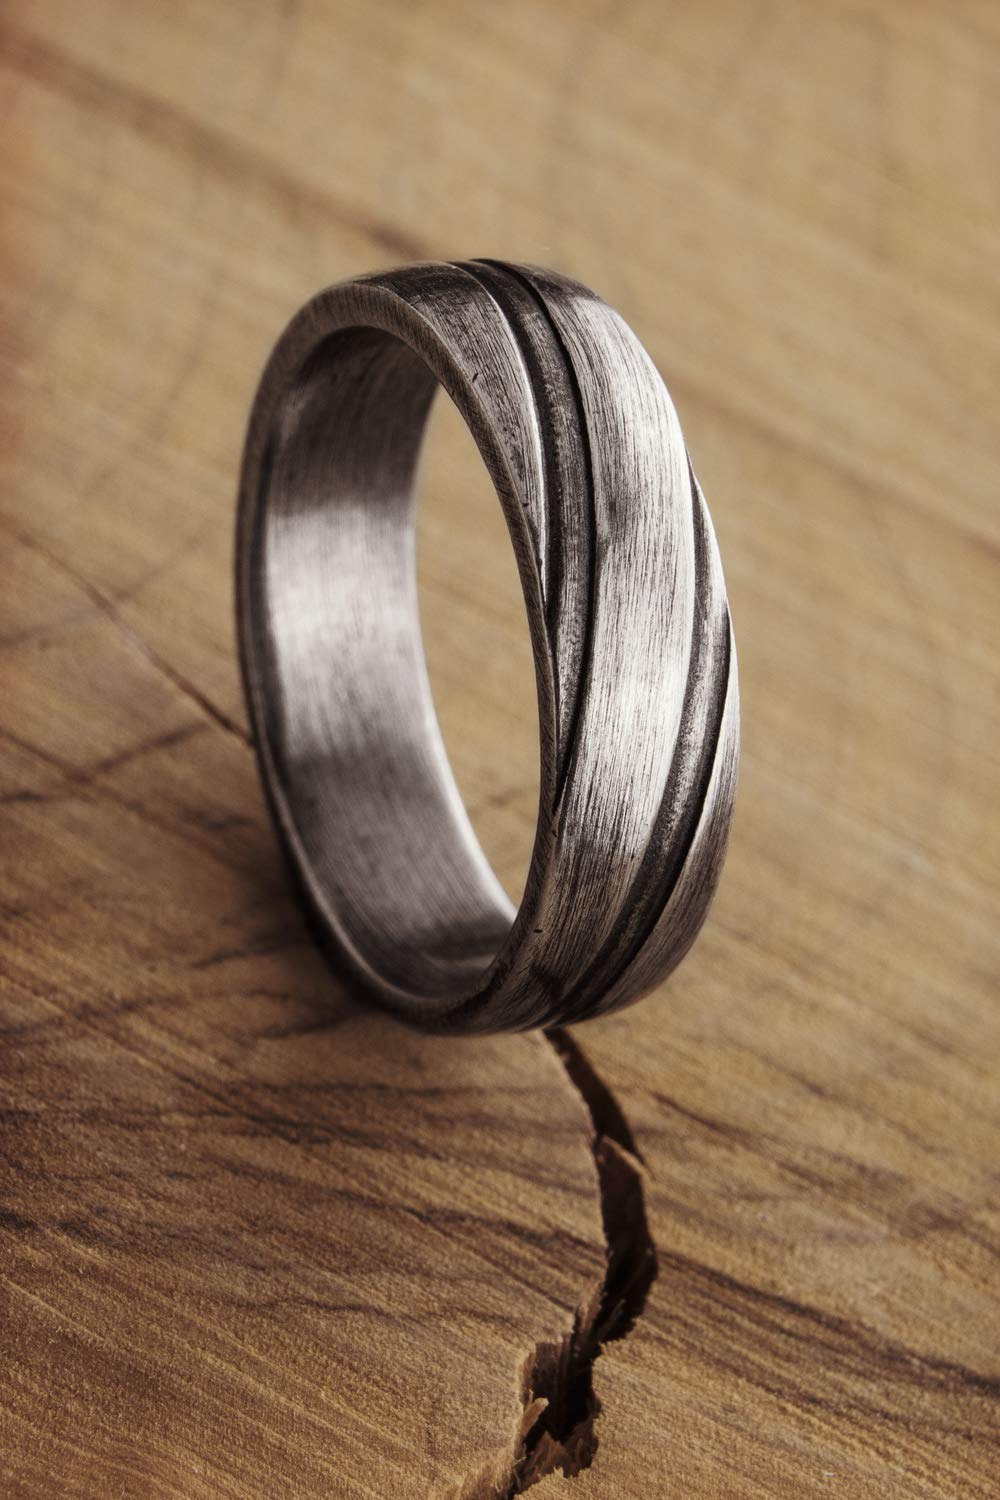 Engraved Silver Ring, Oxidized Silver Design, 925 Sterling Silver Ring, Engraved Lines, Thick Solid Silver Band, Gift For Her, Gift For Him/code: 0.006